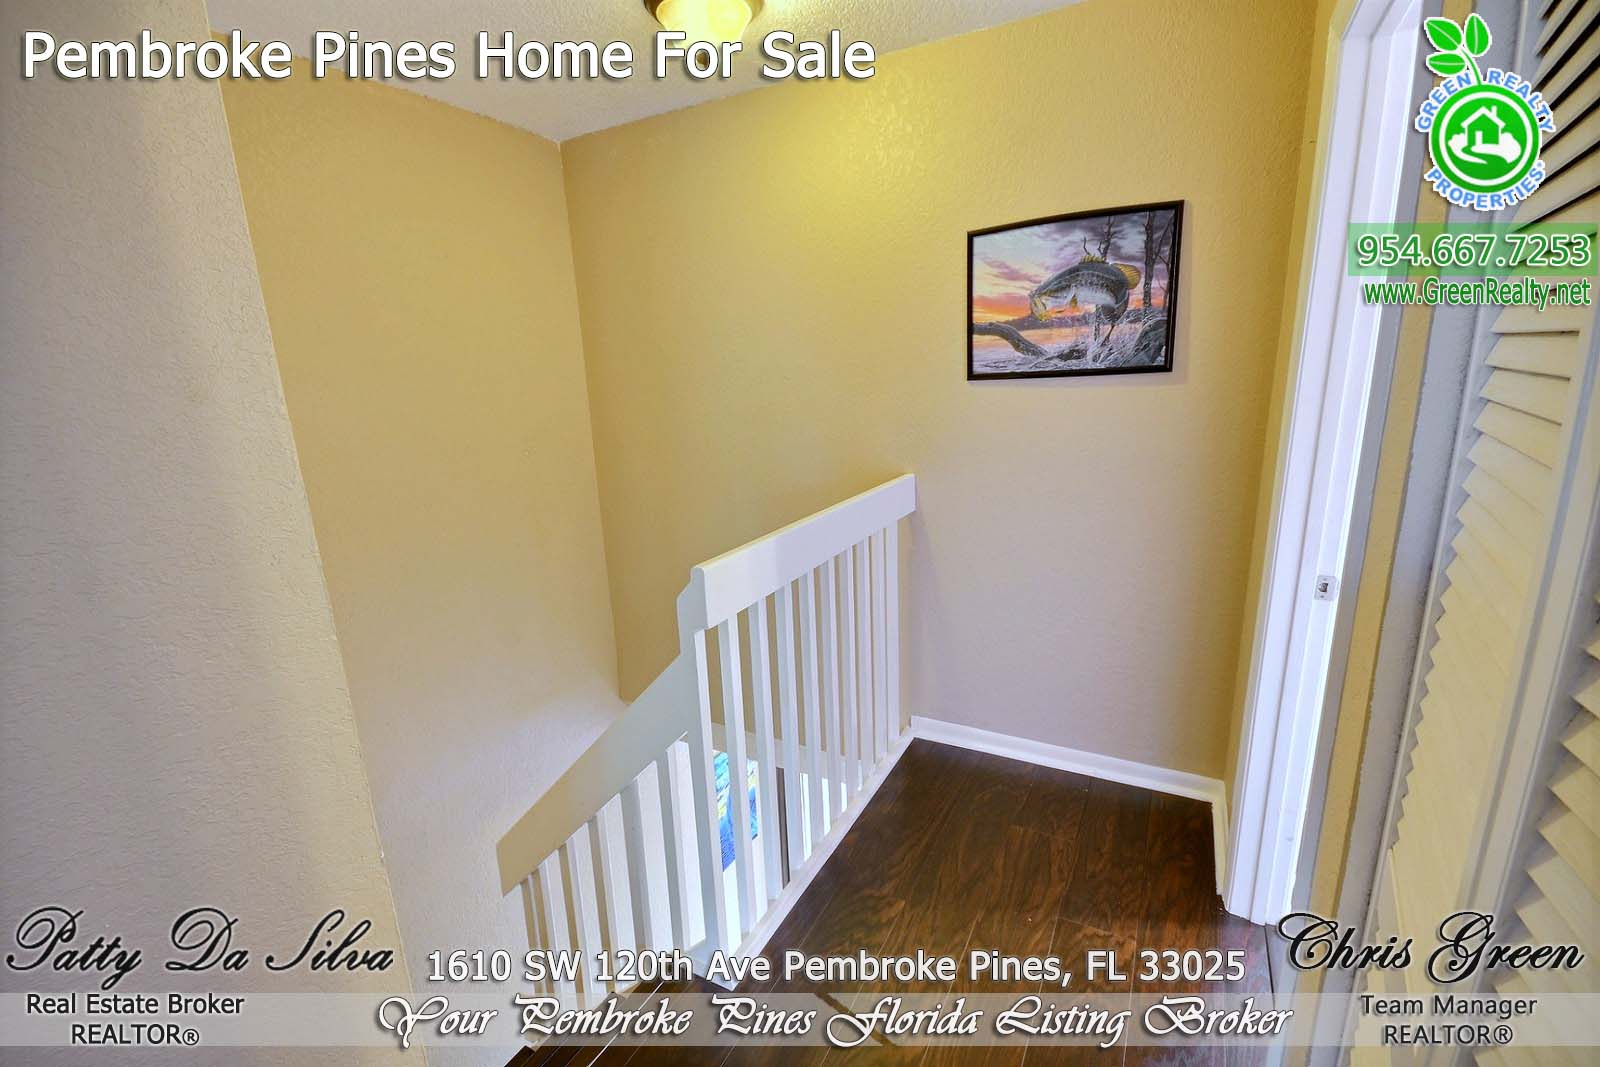 15 Homes For Sale in Pembroke Pines (5)